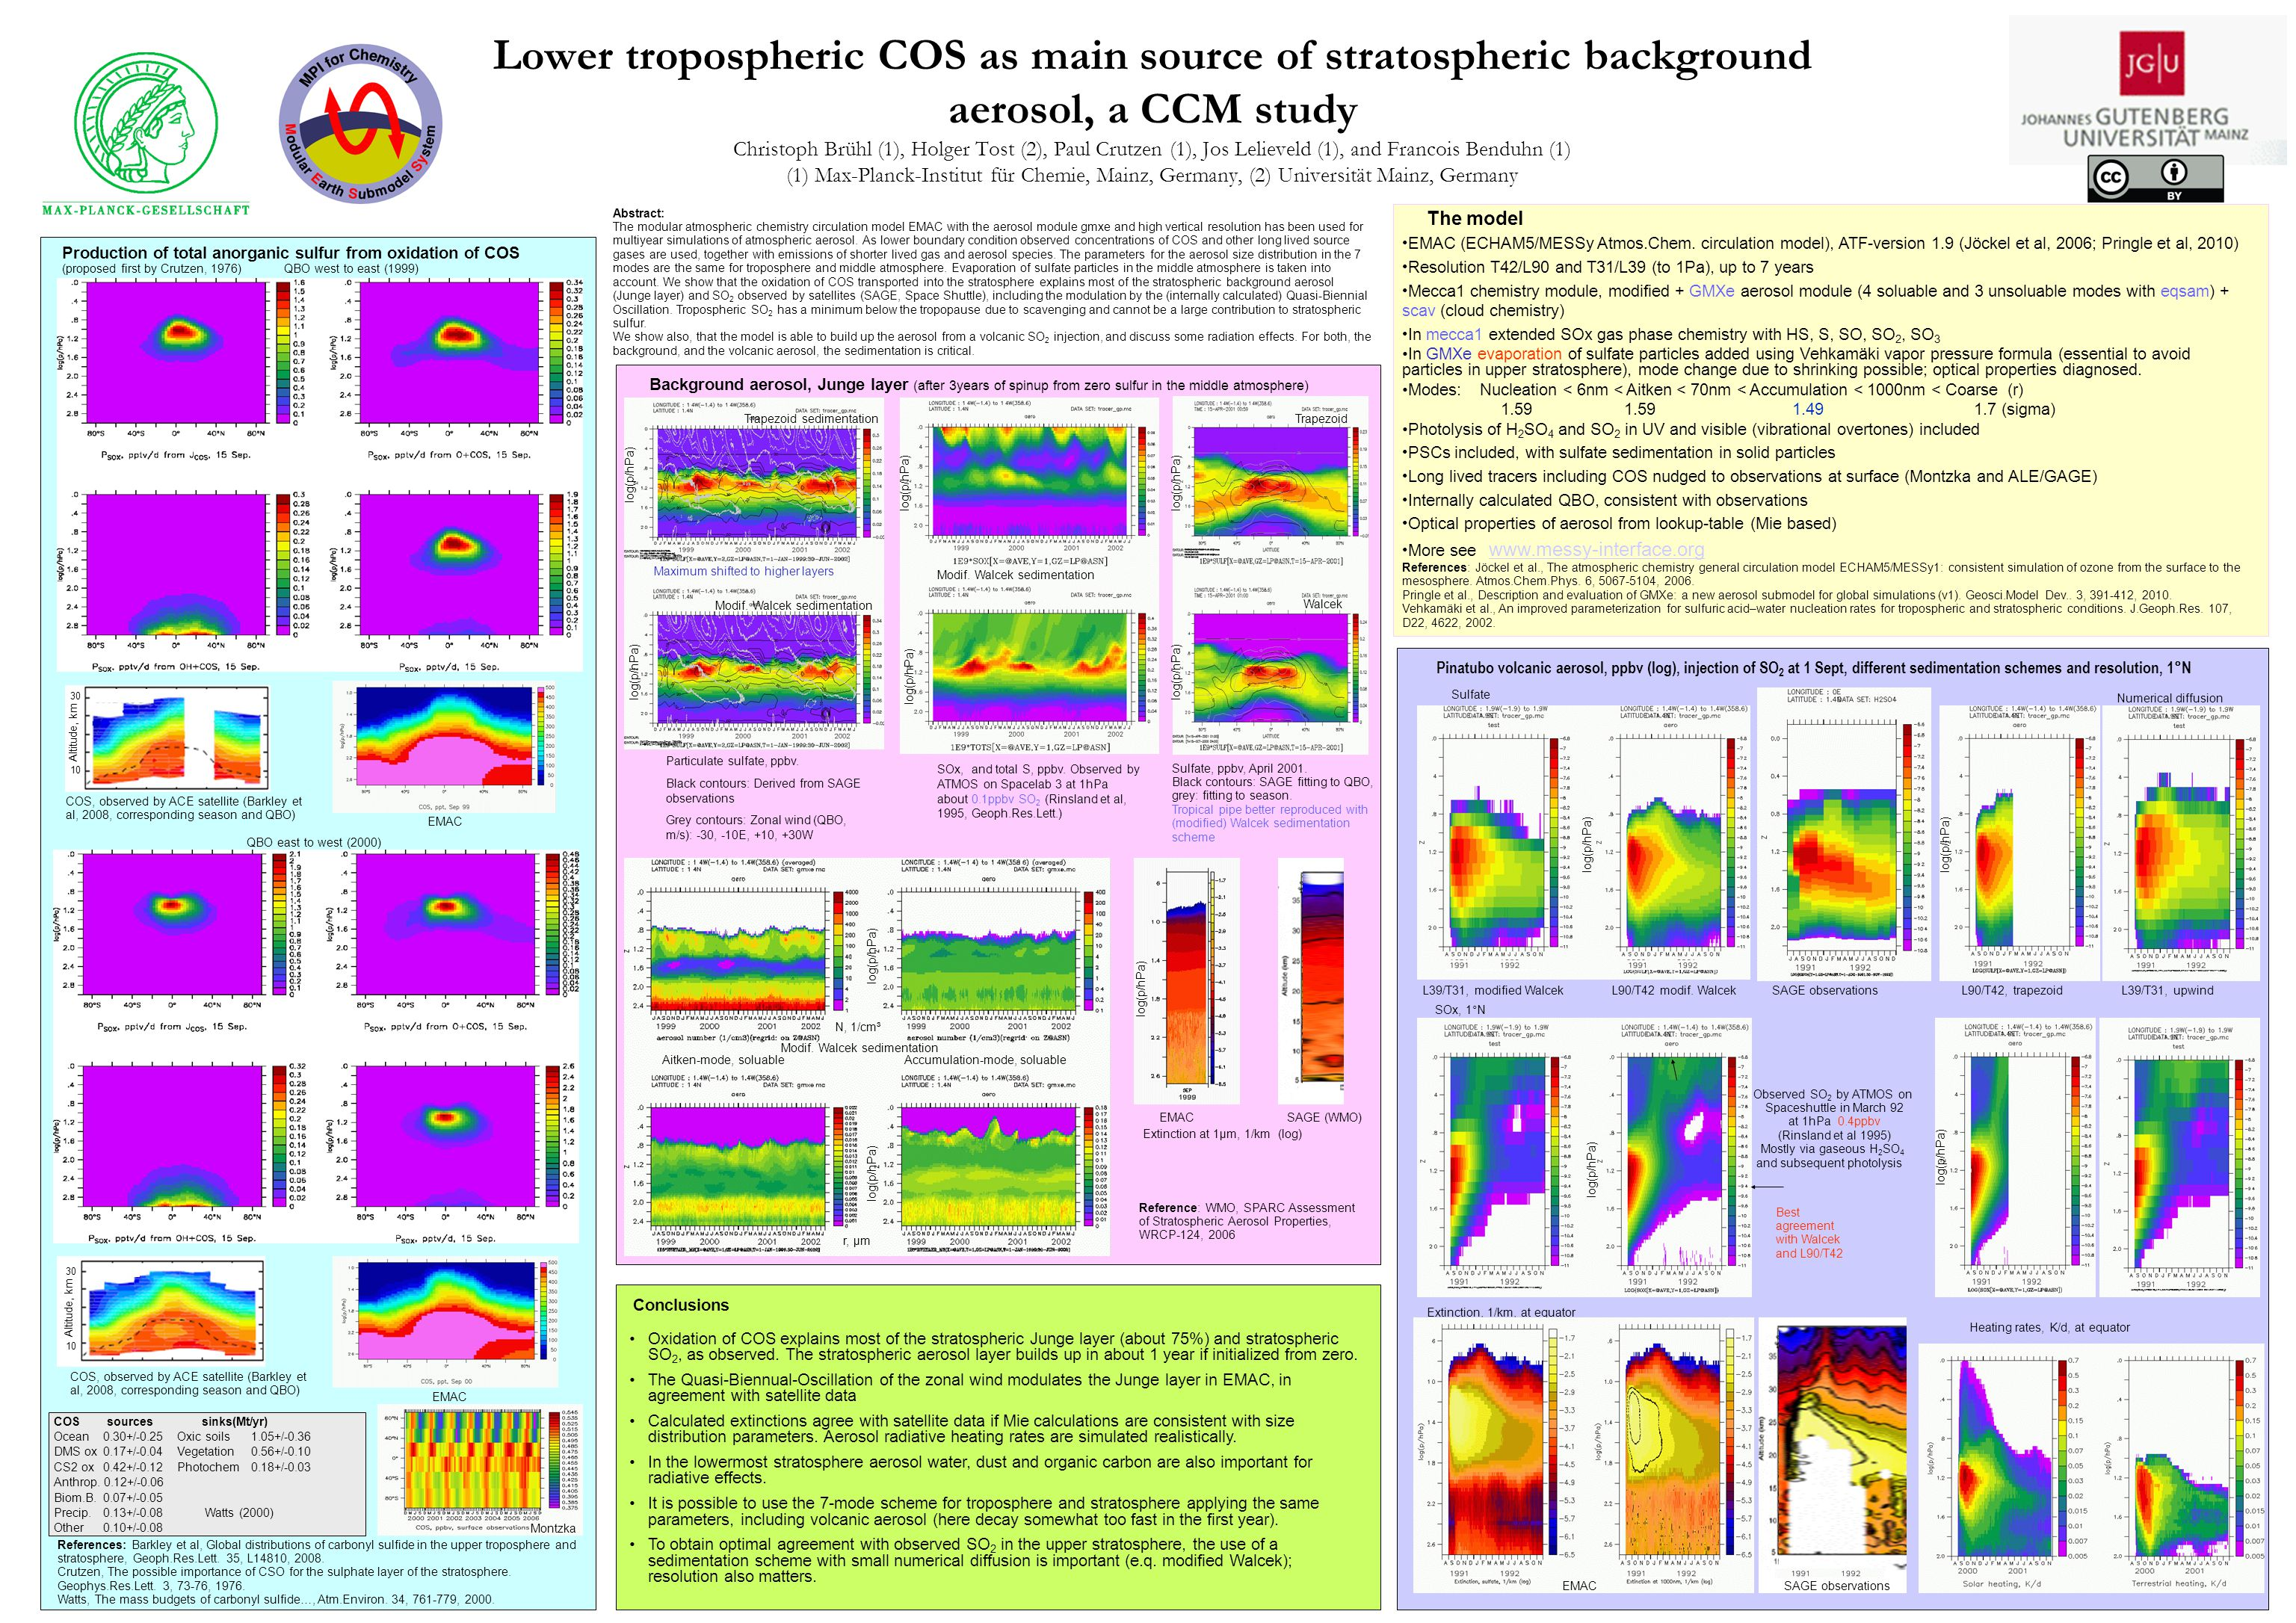 Lower tropospheric COS as main source of stratospheric background aerosol, a CCM study Christoph Brühl (1), Holger Tost (2), Paul Crutzen (1), Jos Lelieveld (1), and Francois Benduhn (1) (1) Max-Planck-Institut für Chemie, Mainz, Germany, (2) Universität Mainz, Germany Abstract: The modular atmospheric chemistry circulation model EMAC with the aerosol module gmxe and high vertical resolution has been used for multiyear simulations of atmospheric aerosol.